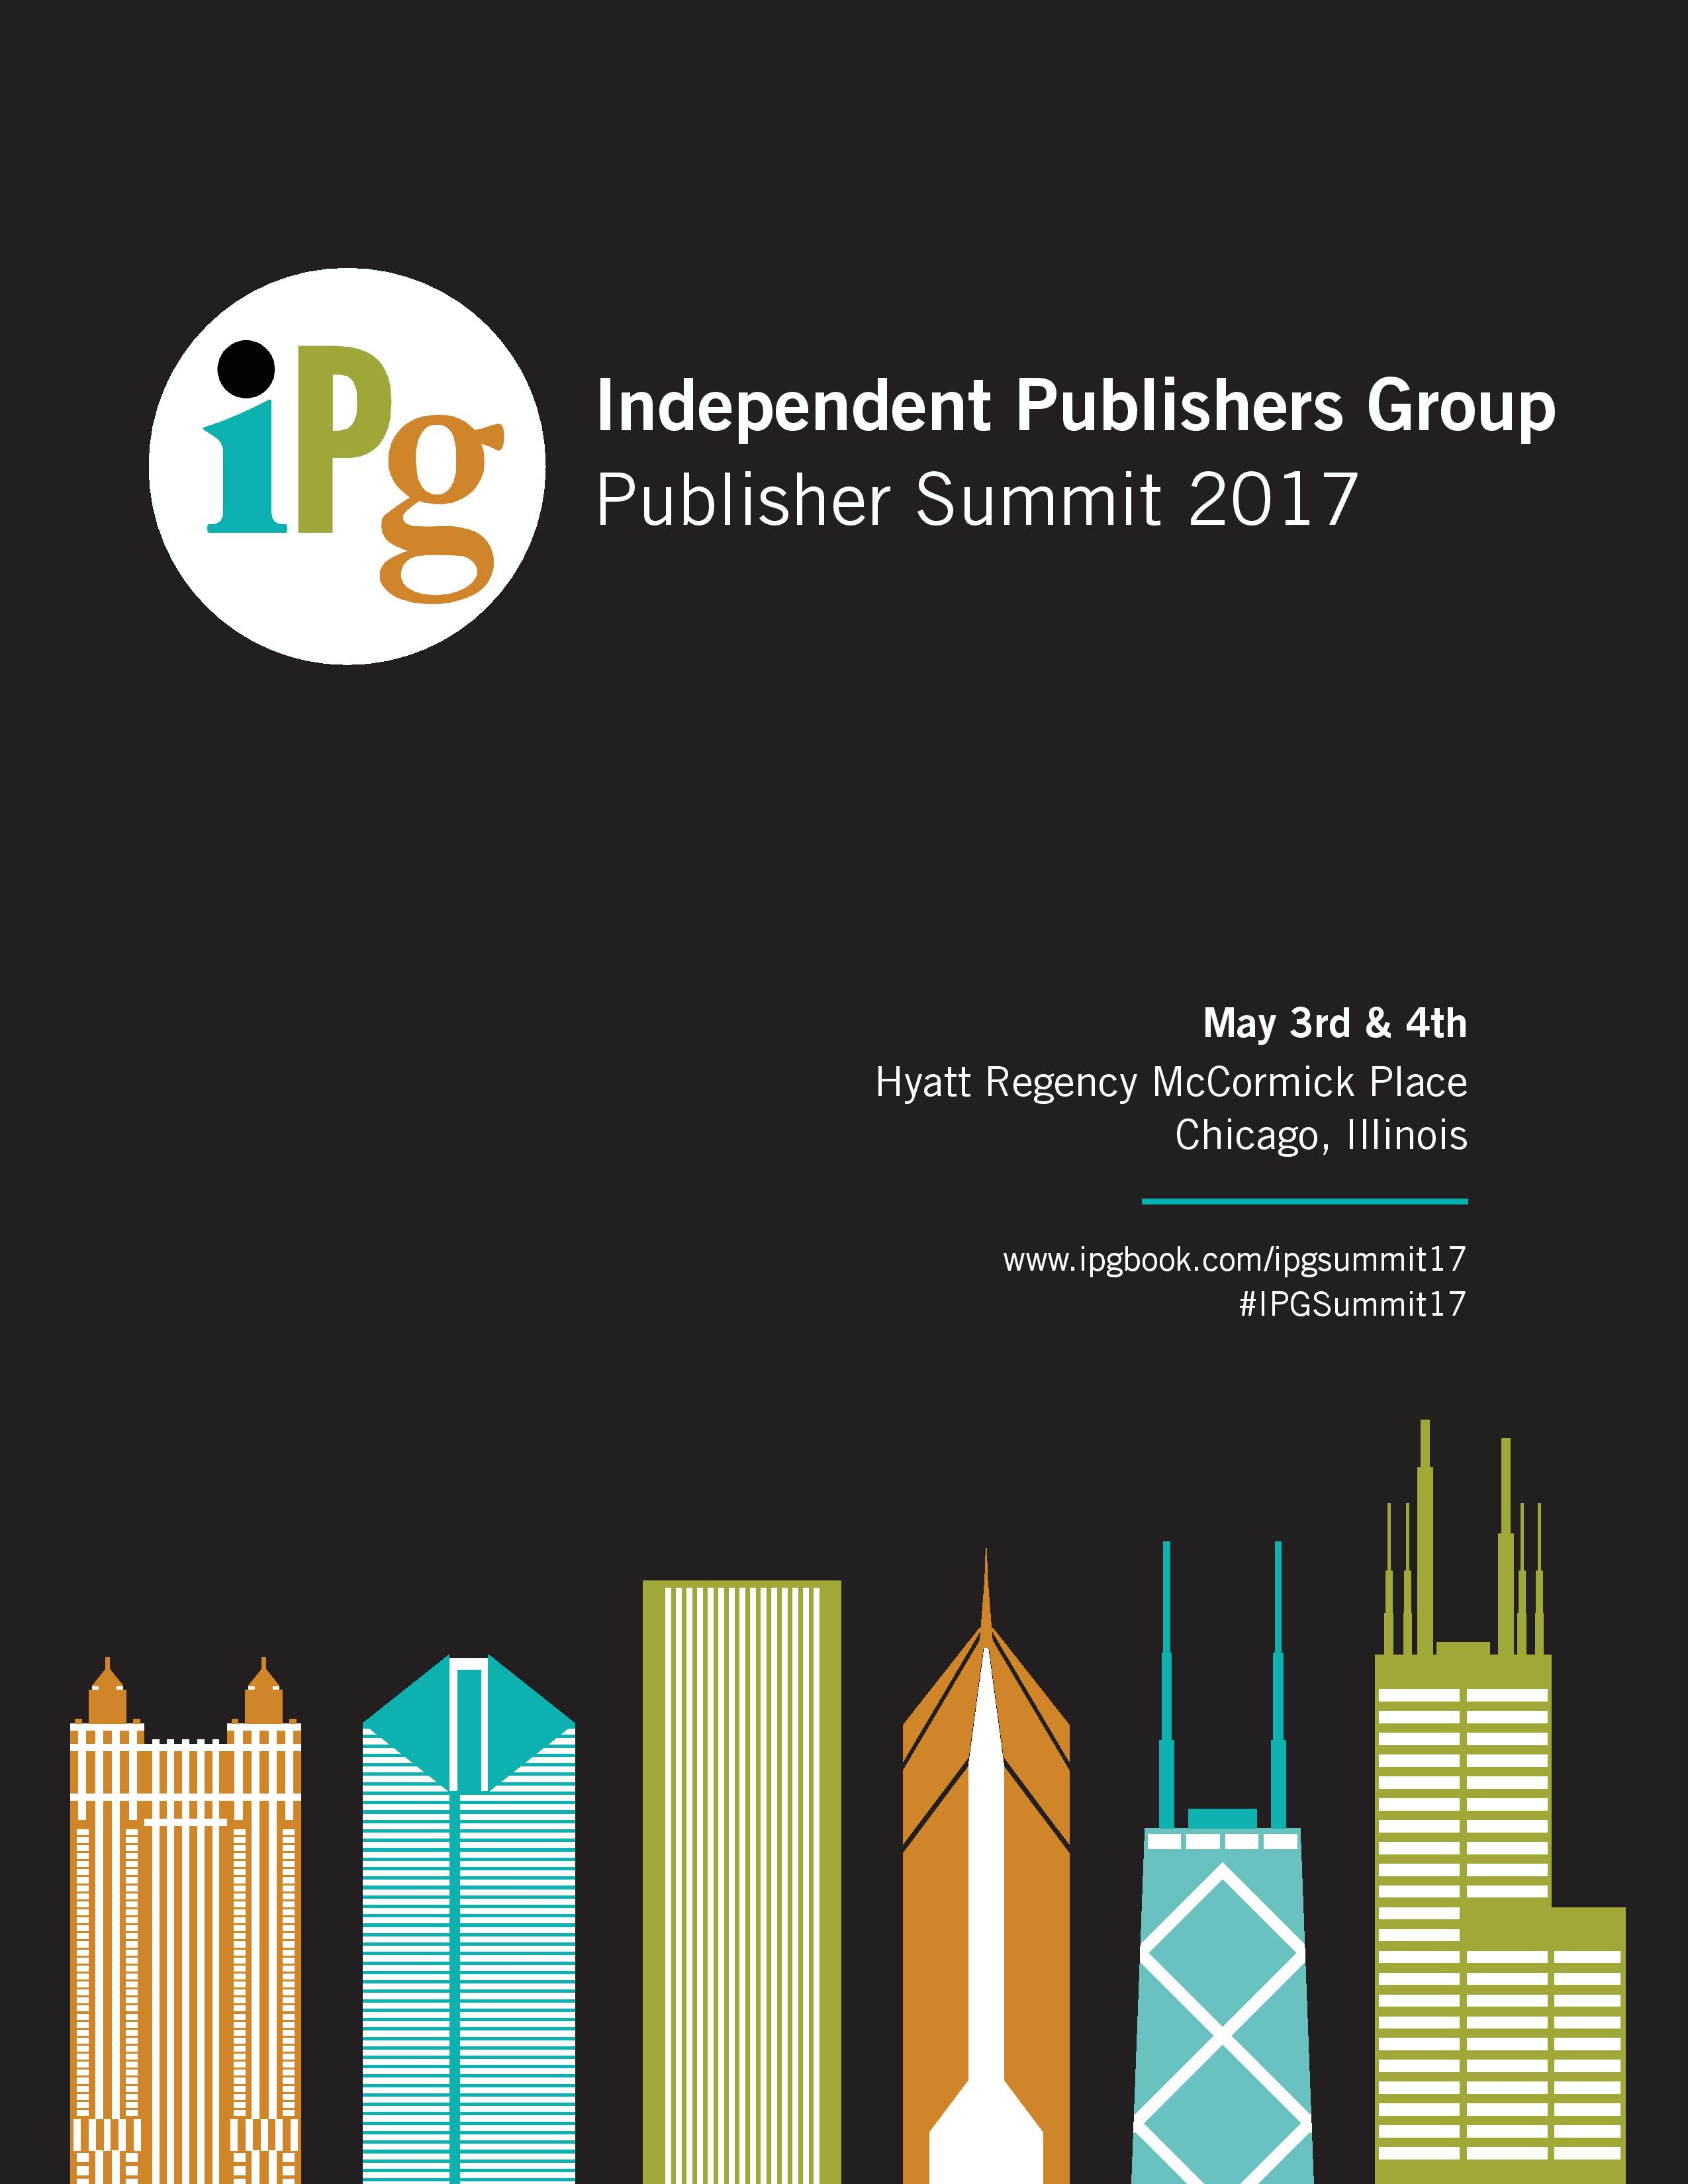 Pub Summit 2017 Program